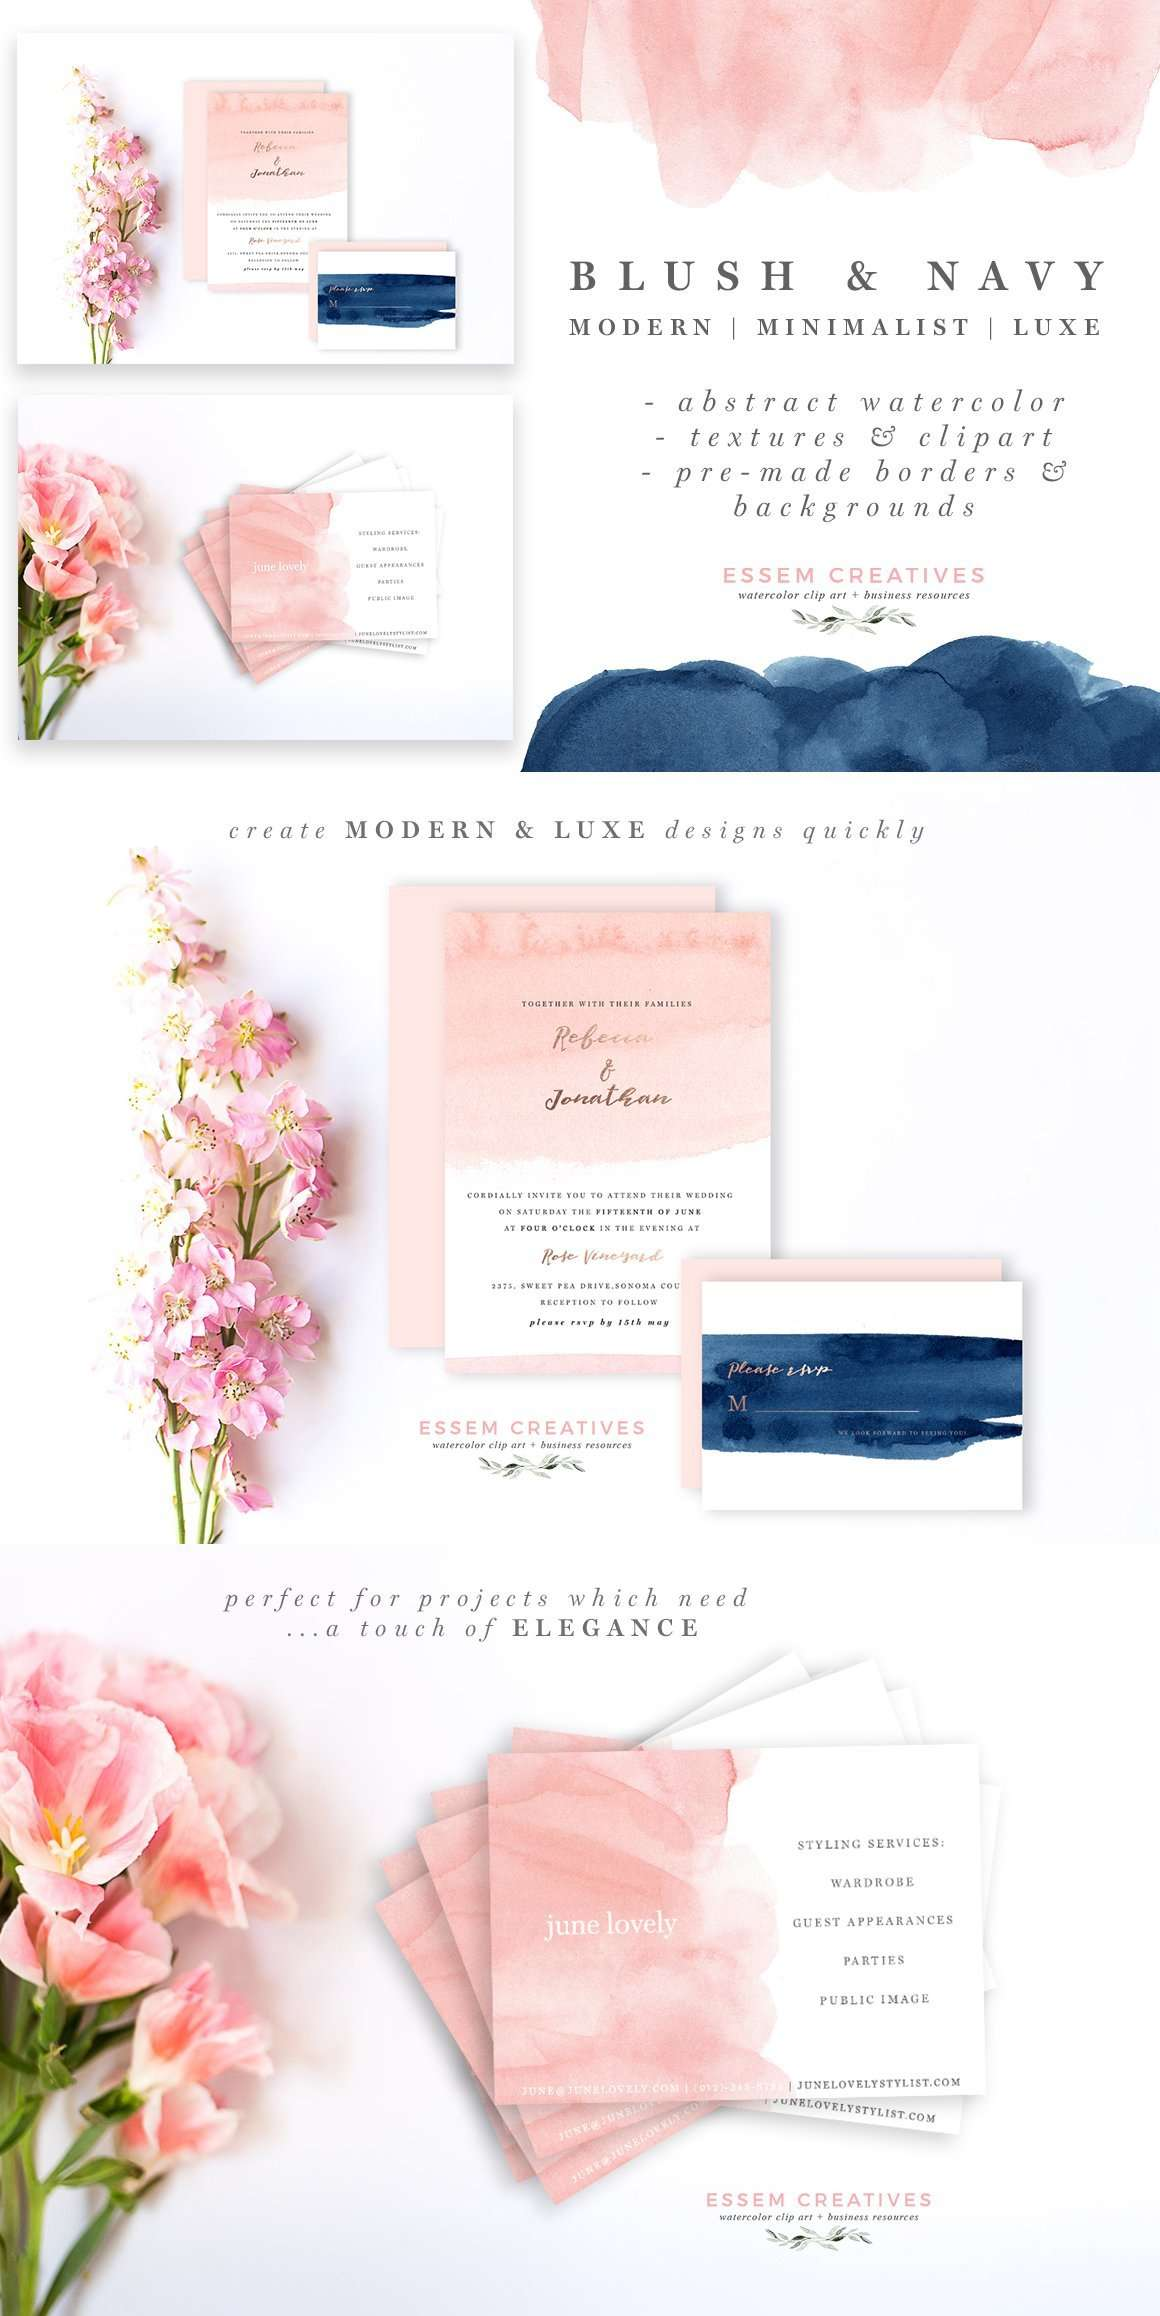 Blush & Navy is a set of hand-painted watercolor clipart, textures, background and borders. The watercolors have been painted using a loose hand, in a minimalist, dreamy, airy style. There are subtle ombres, rough textures (perfect for layering), and charming brush strokes, painted in a blush & navy color scheme. These are perfect for use in wedding invitations, other stationery, logos & branding, website banners & headers, business cards, packaging materials, art prints, coffee mugs, etc.